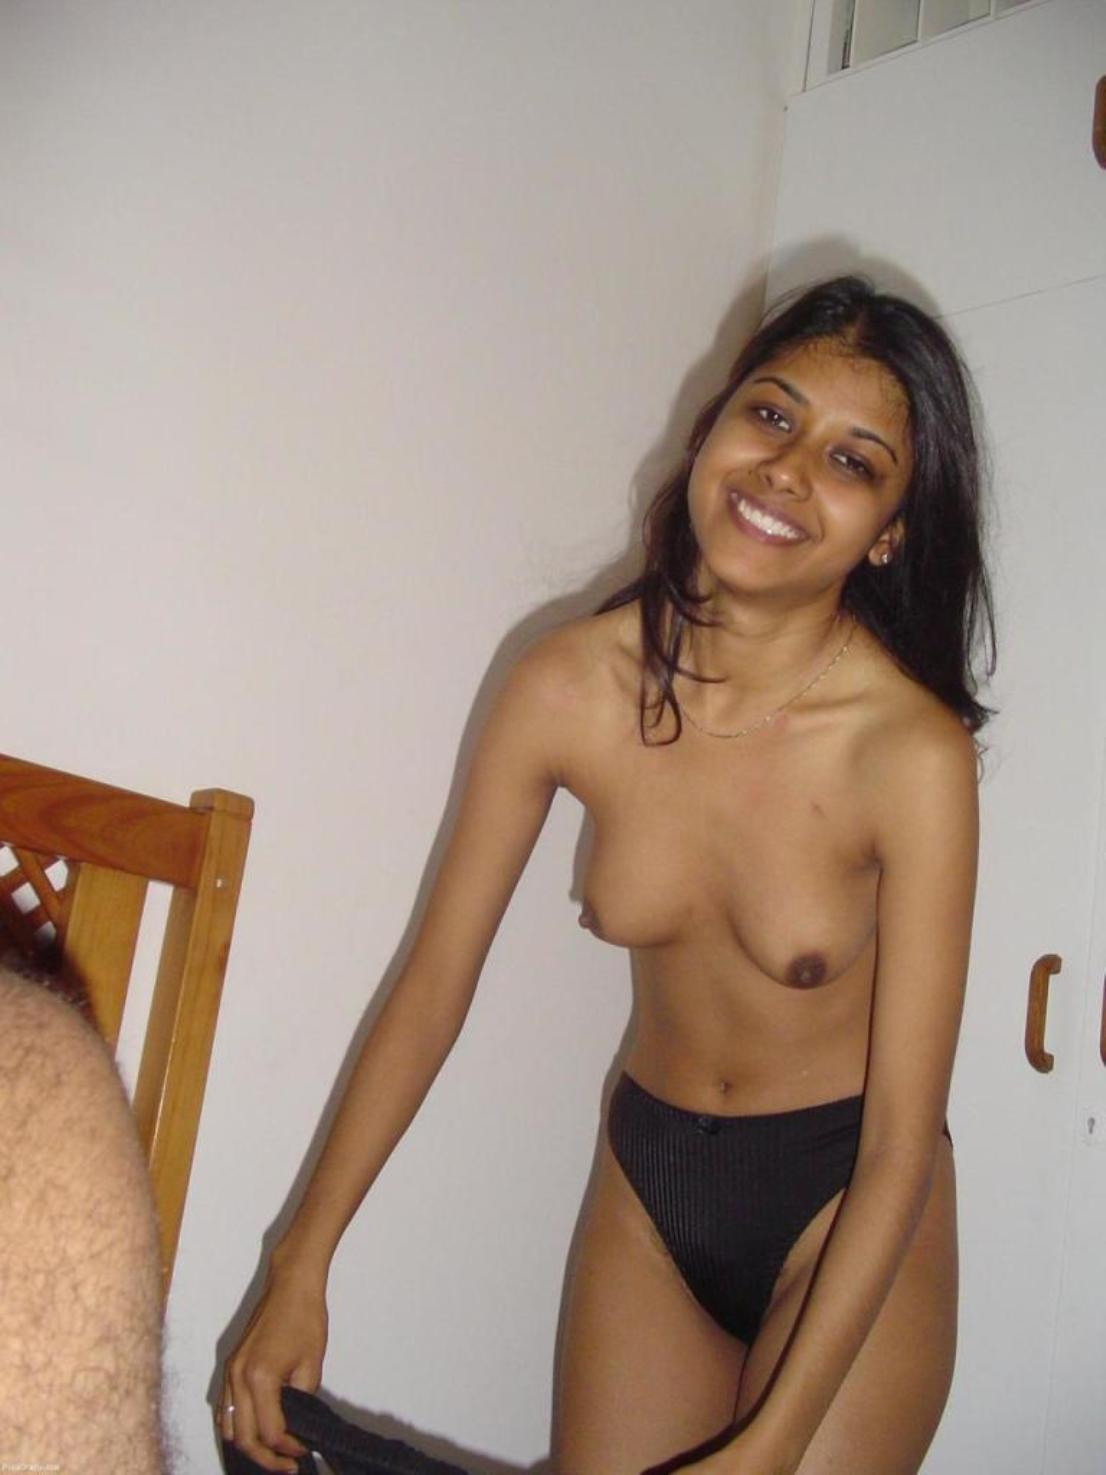 Indian Desi Aunty And Bhabhi Nude Photo Hot Bengali -5165